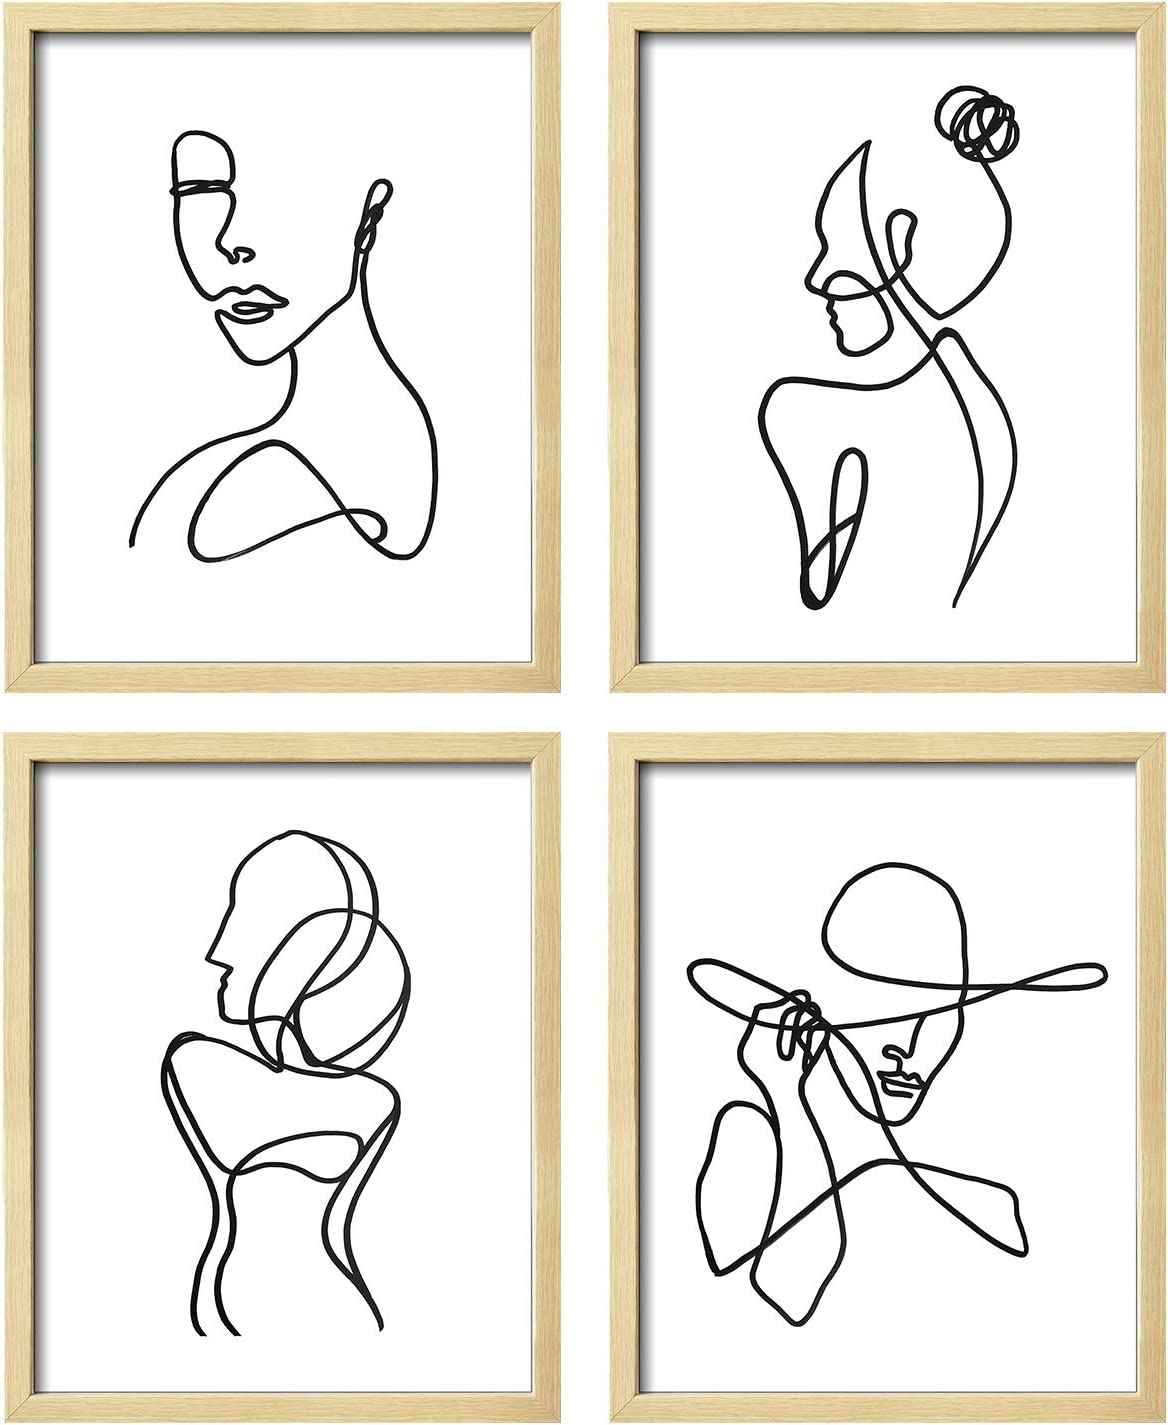 ArtbyHannah 8x10 Inch Unframed Minimalist Line Art Print Set of 4 Wall Art Decor Abstract Woman's Body Shape Poster Print Wall Art Minimalist Painting Modern Artwork